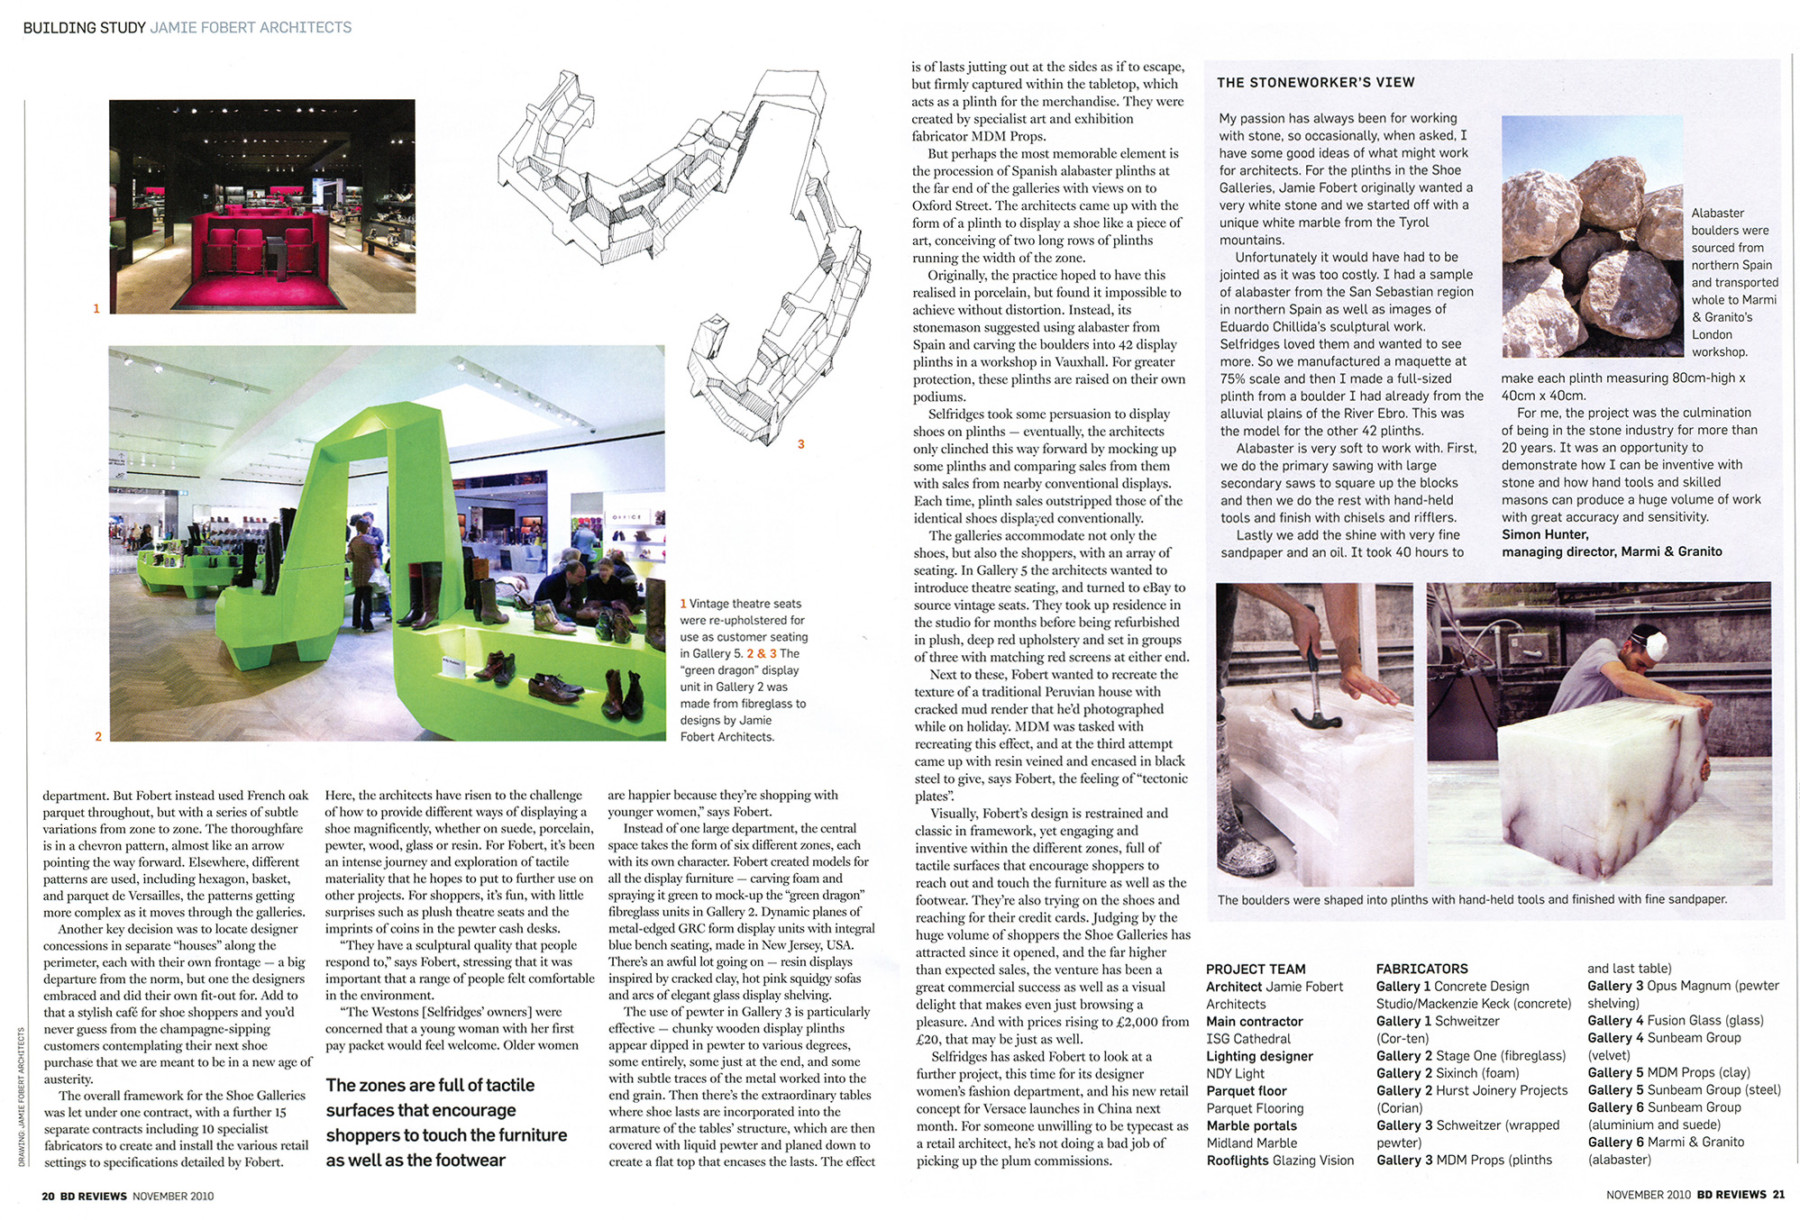 Jamie-Fobert-Architects-Selfridges-Shoes-Article-Press-BD 3